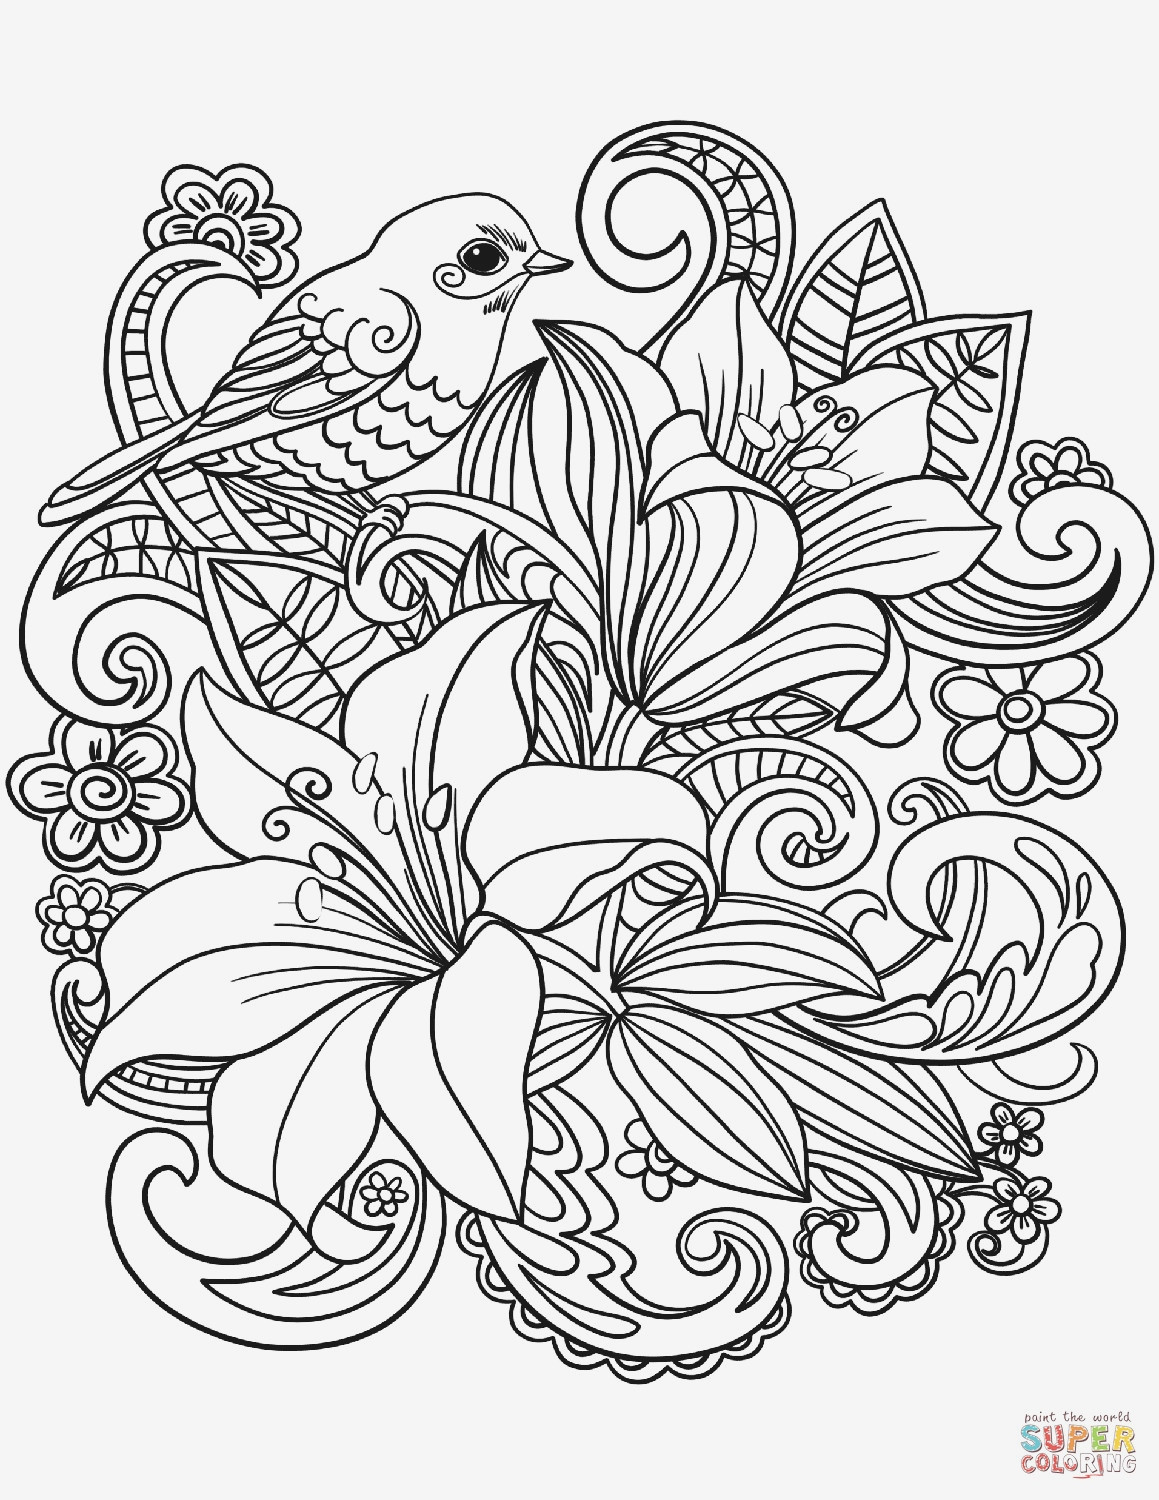 flowers in vase of free flower coloring pages printable cool vases flower vase coloring in free flower coloring pages printable cool vases flower vase coloring page pages flowers in a top i 0d